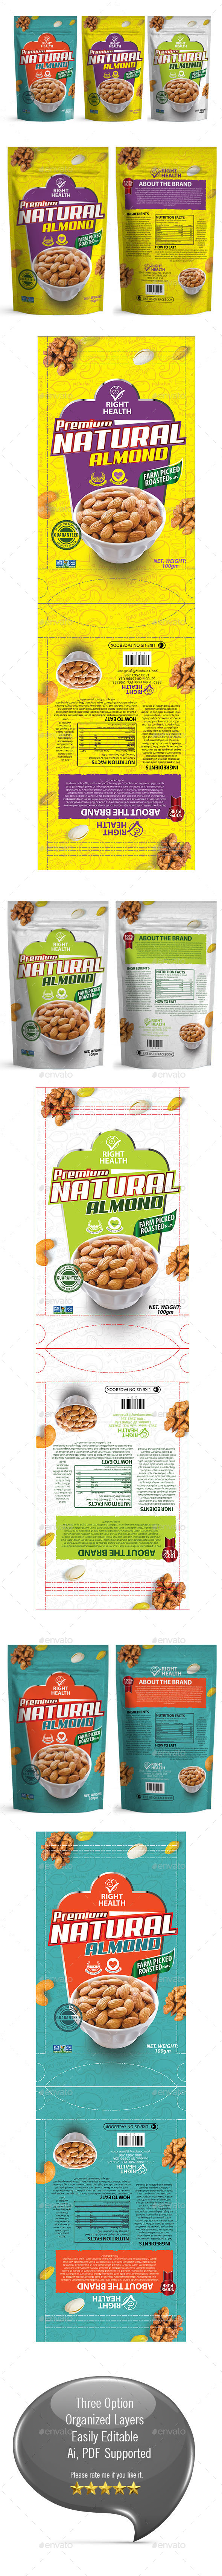 Food Packaging Graphics Designs & Templates from GraphicRiver